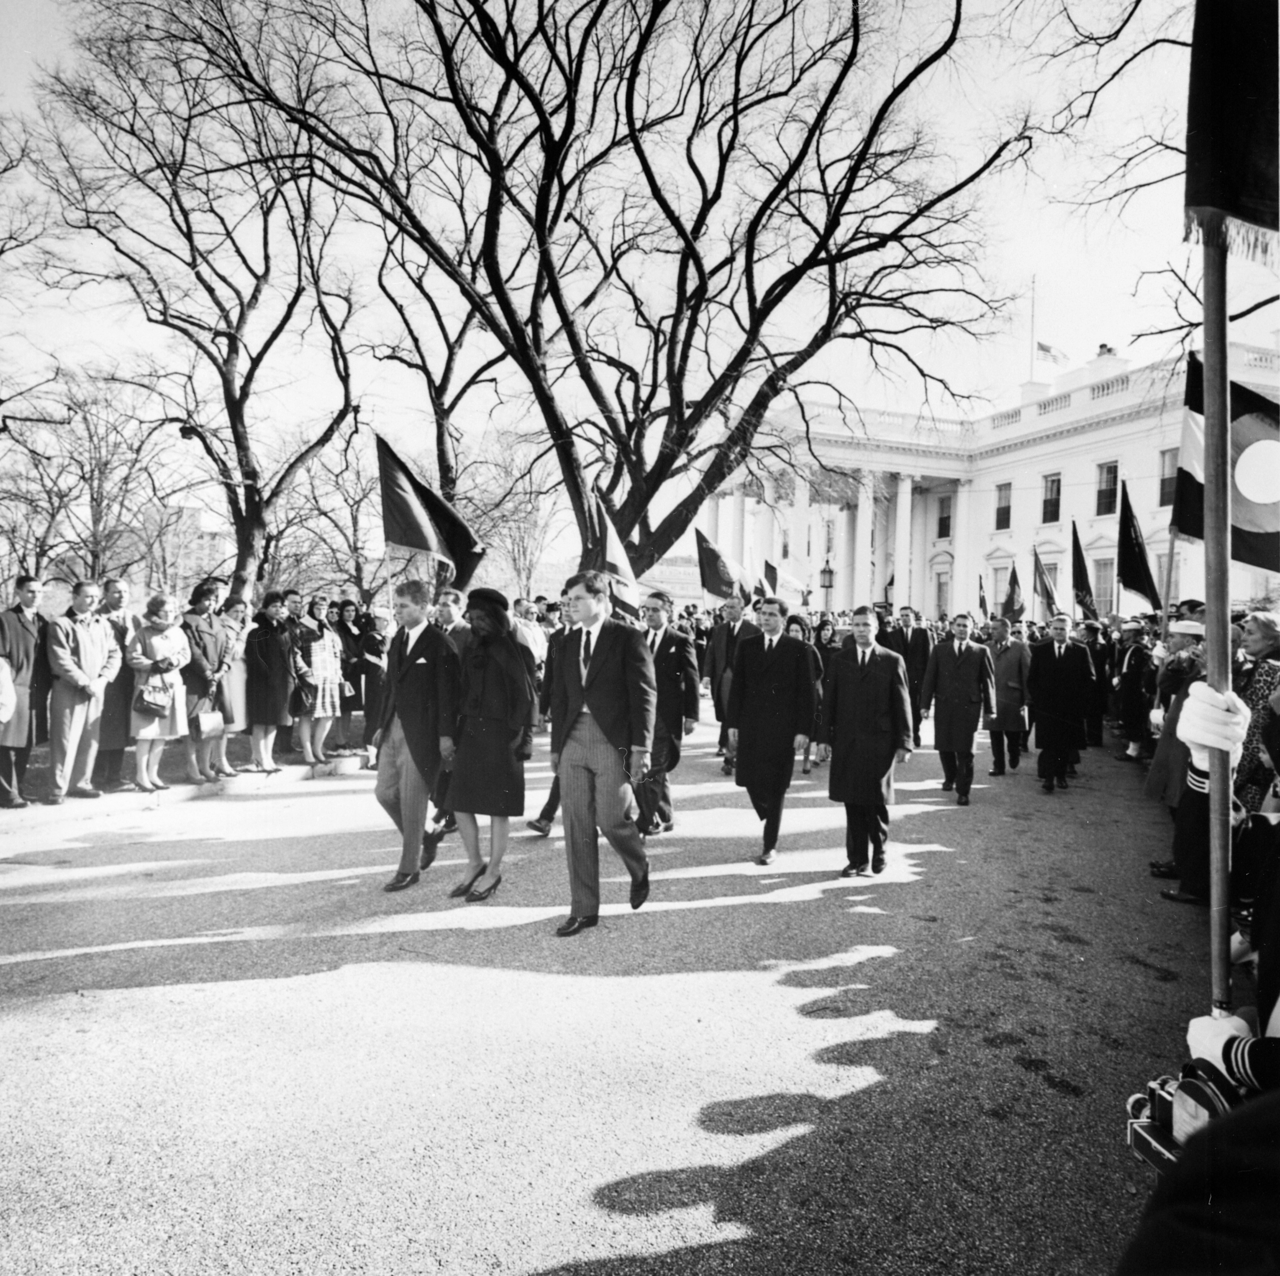 Jacqueline Kennedy, her brothers-in-law, Attorney General Robert F. Kennedy and Senator Edward Kennedy, walk from the White House as part of the funeral procession accompanying President Kennedy's casket to St. Matthew's Cathedral, on November 25, 1963. (Abbie Rowe White House Photographs)